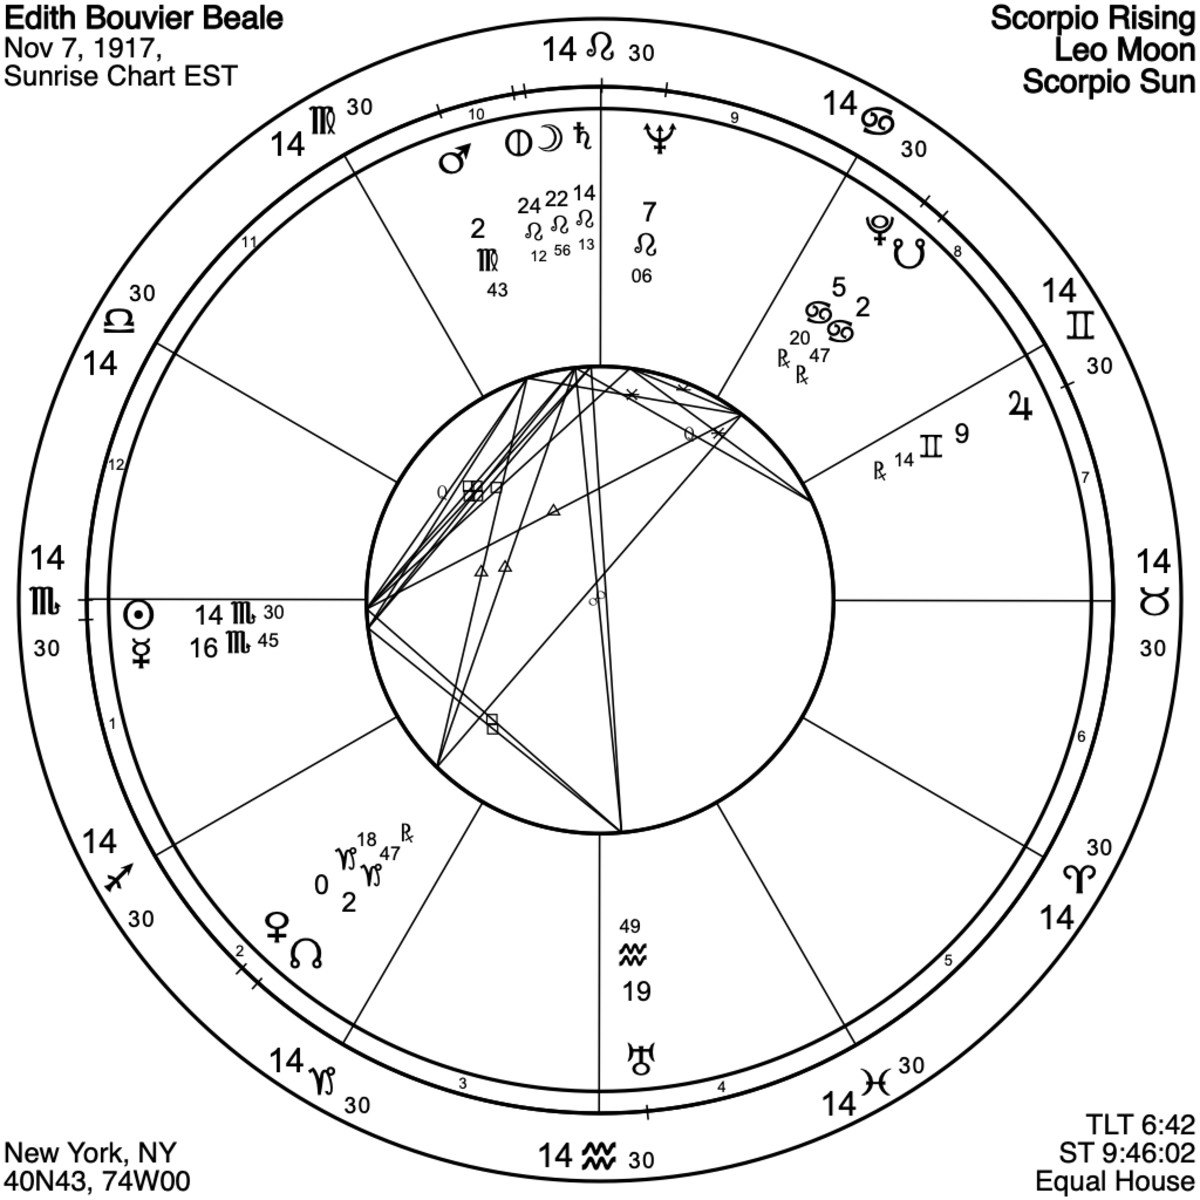 """Little Edie's"" natal chart is closer to normal, but Little Edie blamed her failures on her mother. Her Moon-Saturn conjunction, squared by her Sun-Mercury conjunction, suggests depression so entrenched she might have thought it normal."